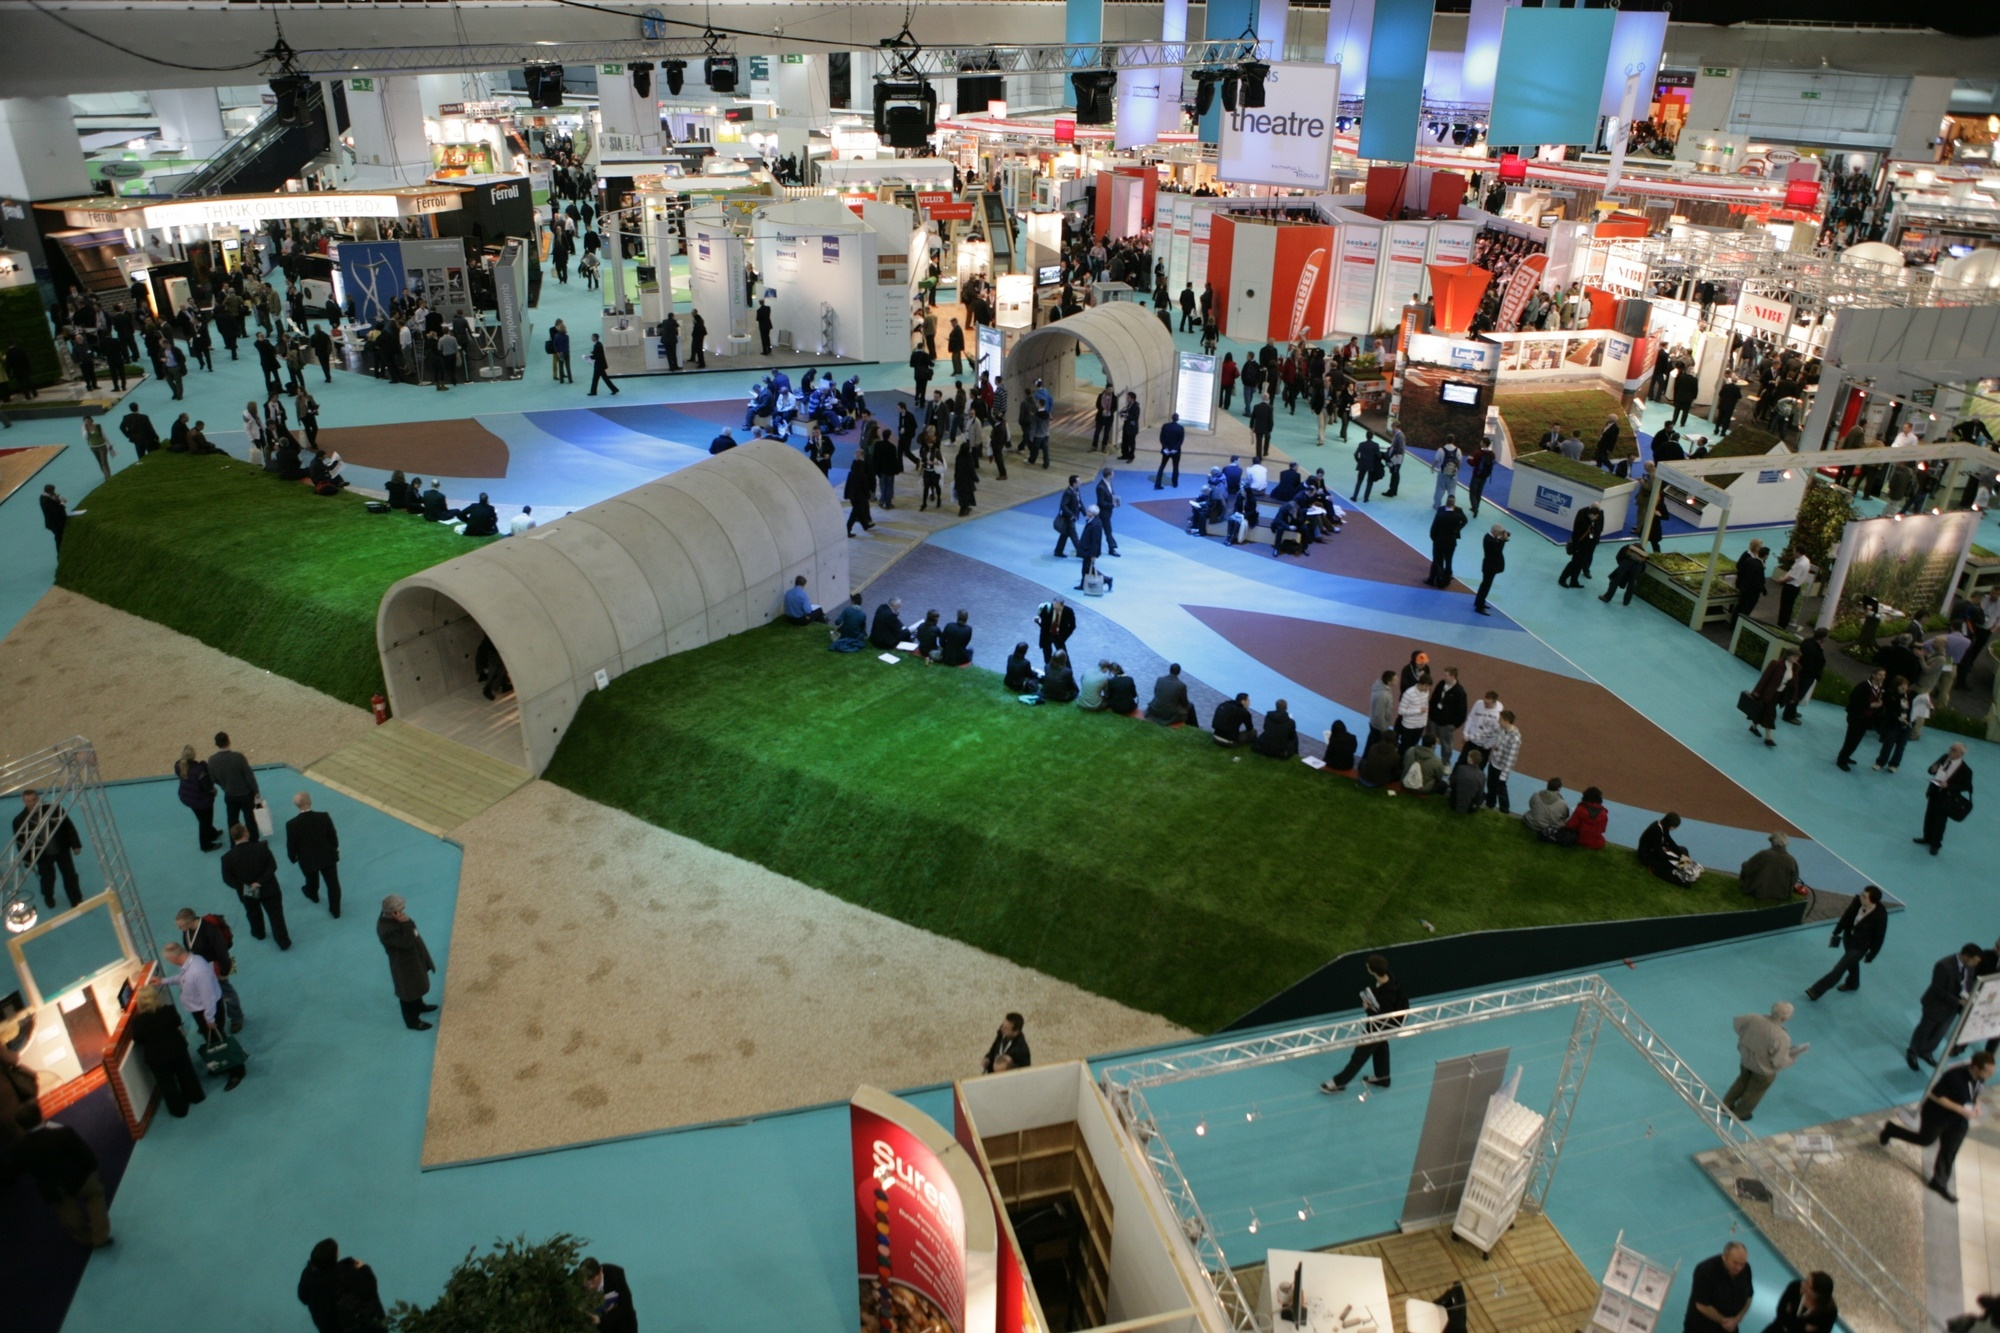 Image of our design for the central space at Ecobuild 2010 entitled 'A River Runs Through'